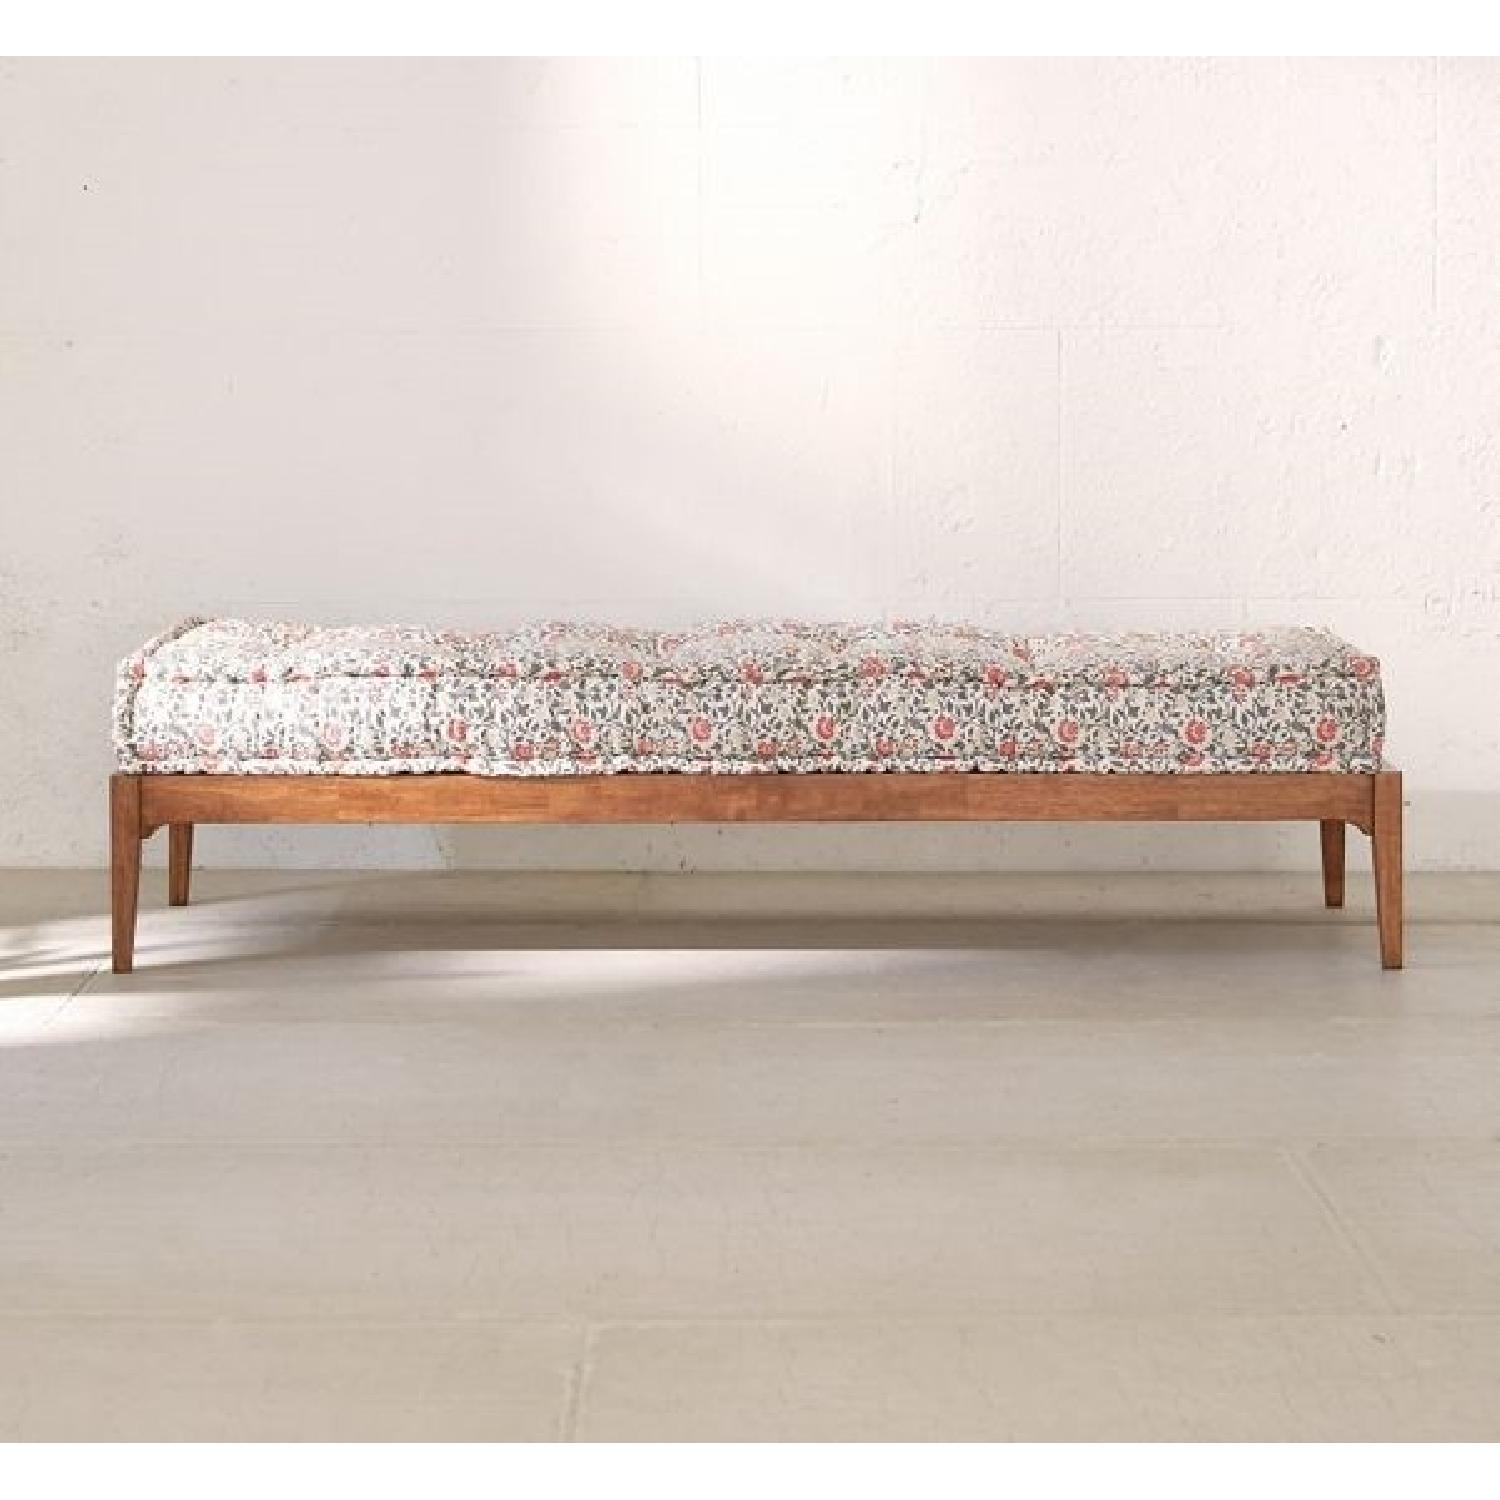 Urban Outfitters Hopper Daybed Frame - AptDeco